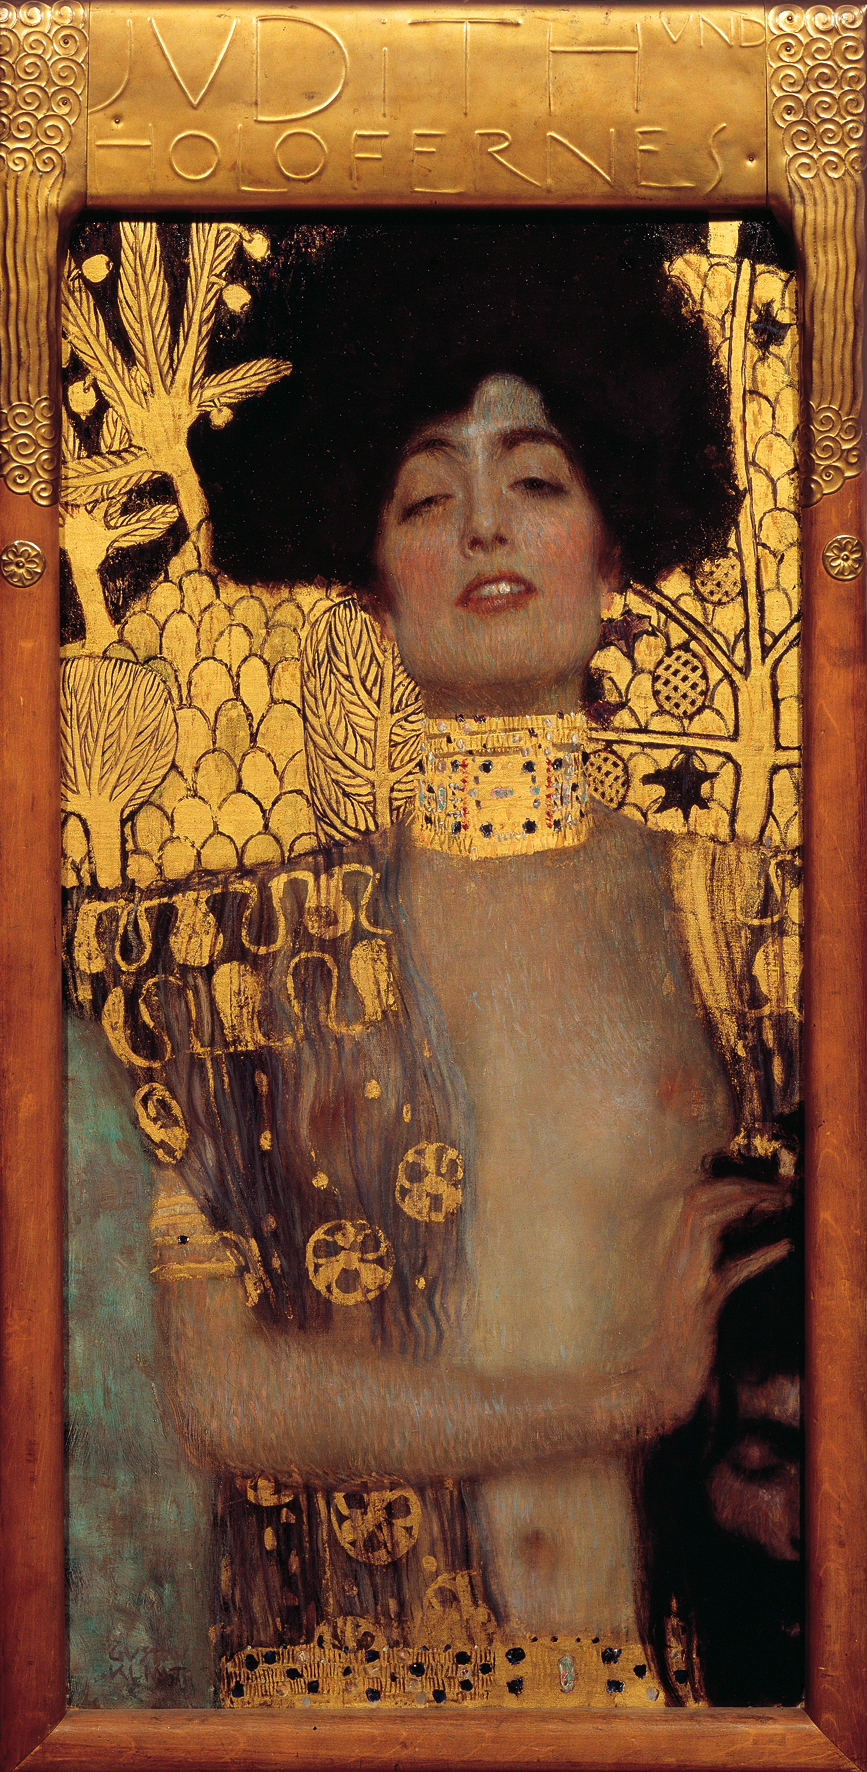 http://upload.wikimedia.org/wikipedia/commons/9/92/Gustav_Klimt_039.jpg?uselang=es